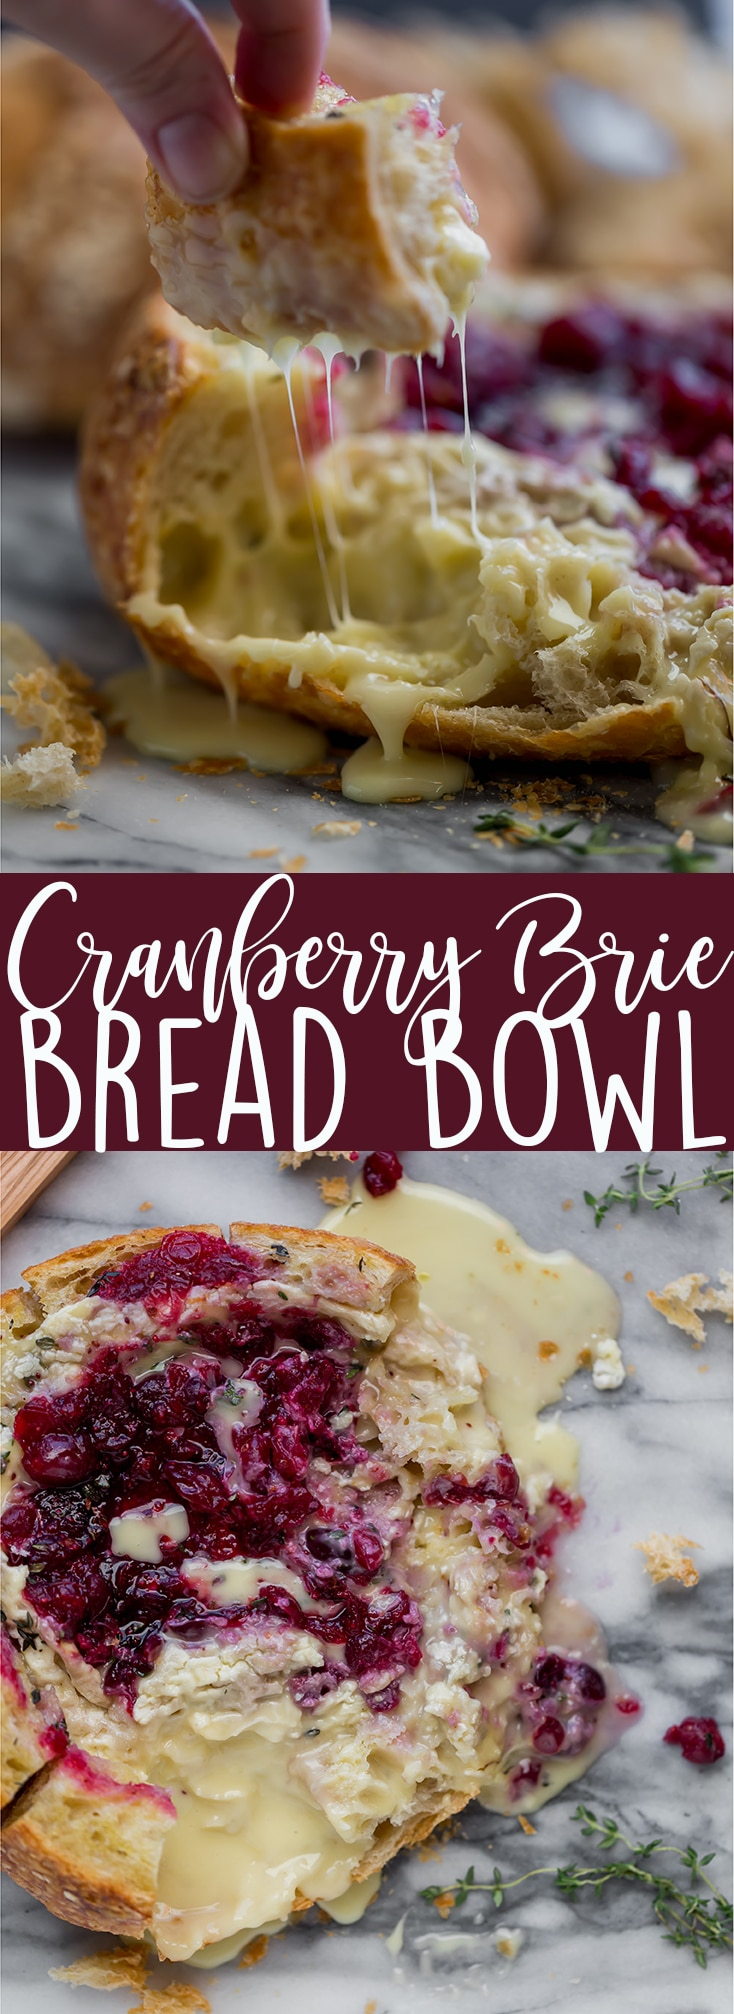 This Tear Apart Baked Cranberry Brie Bread Bowl is a beautiful holiday party appetizer. Melty brie and sweet tart cranberry sauce are a match made in heaven! | Baked Brie | Bloomin' Brie Bread Bowl | Holiday baked brie | Brie and cranberry appetizer | Christmas Appetizer | Thanksgiving Appetizer | New Years Appetizer | Appetizer for parties | Baked Brie Dip in bread